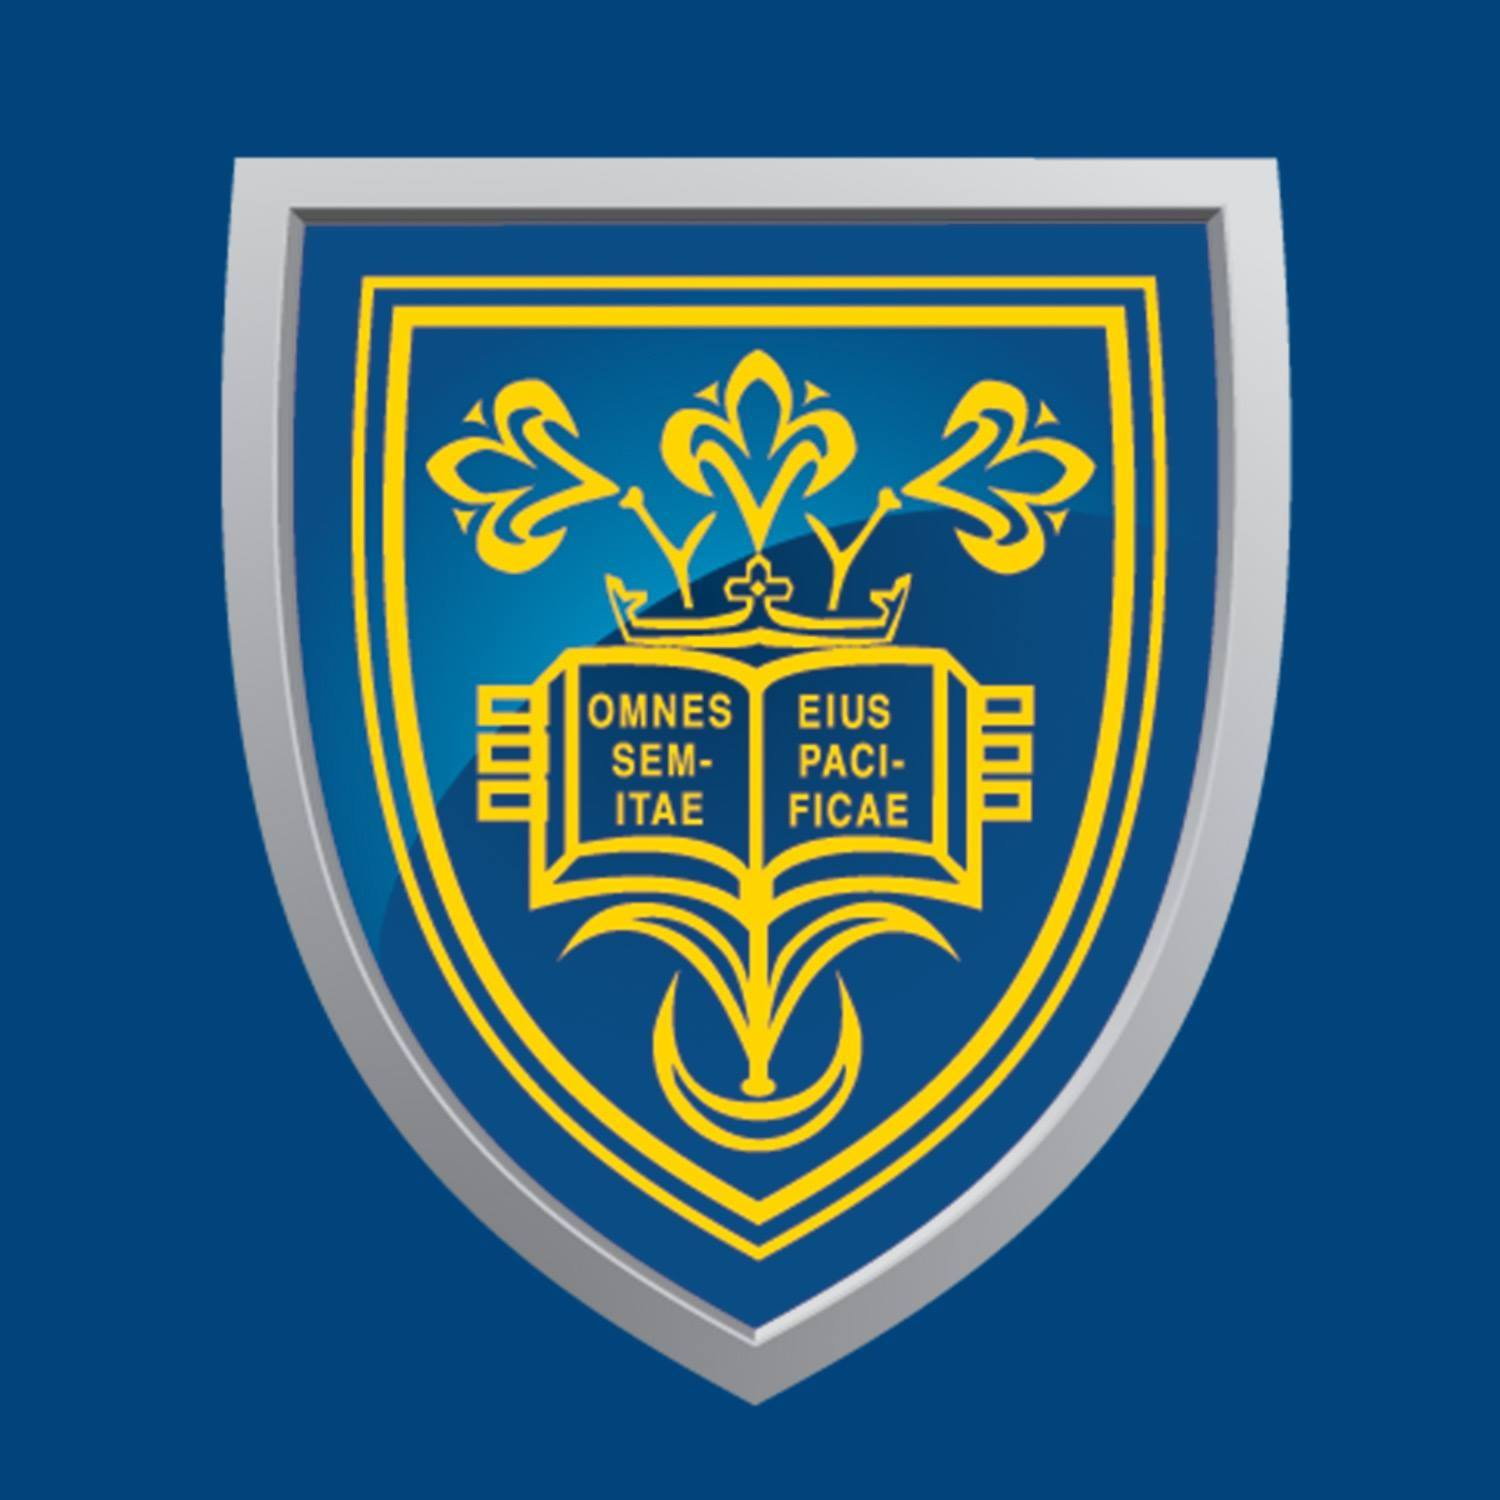 The College of St. Scholastica - St. Cloud